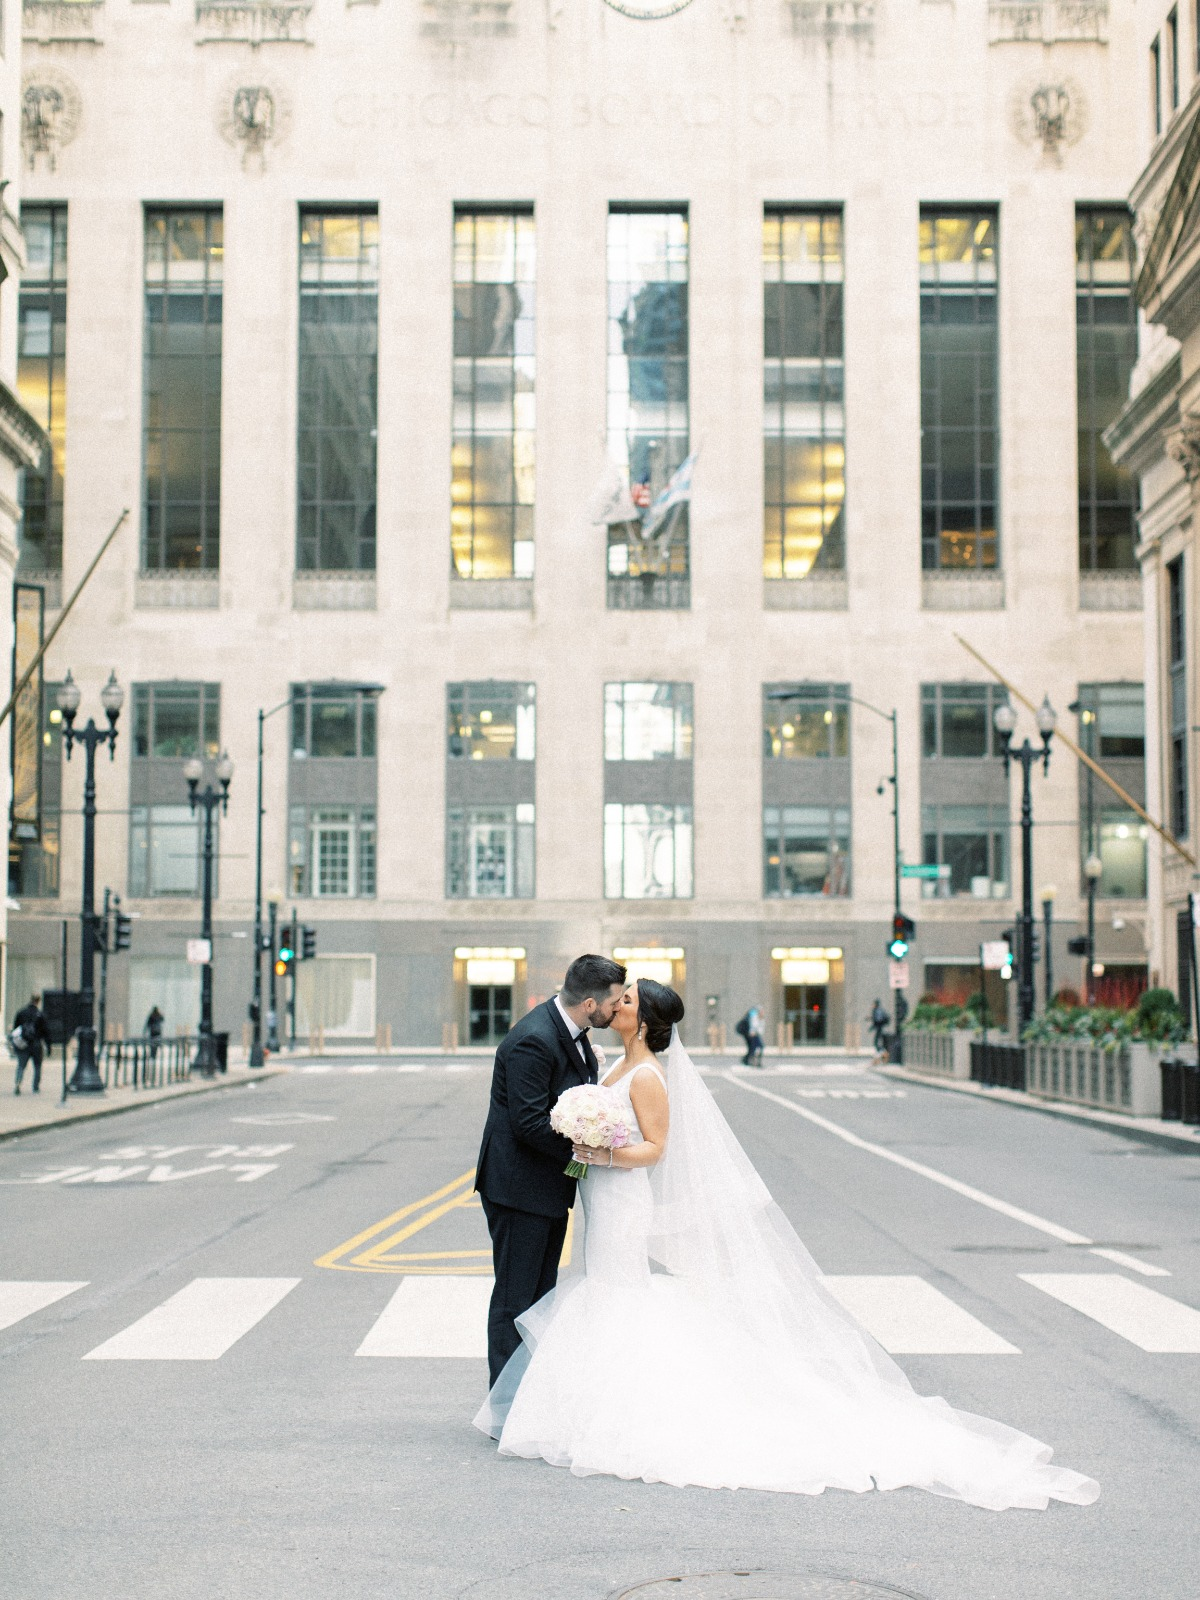 Chicago wedding city portrait ideas